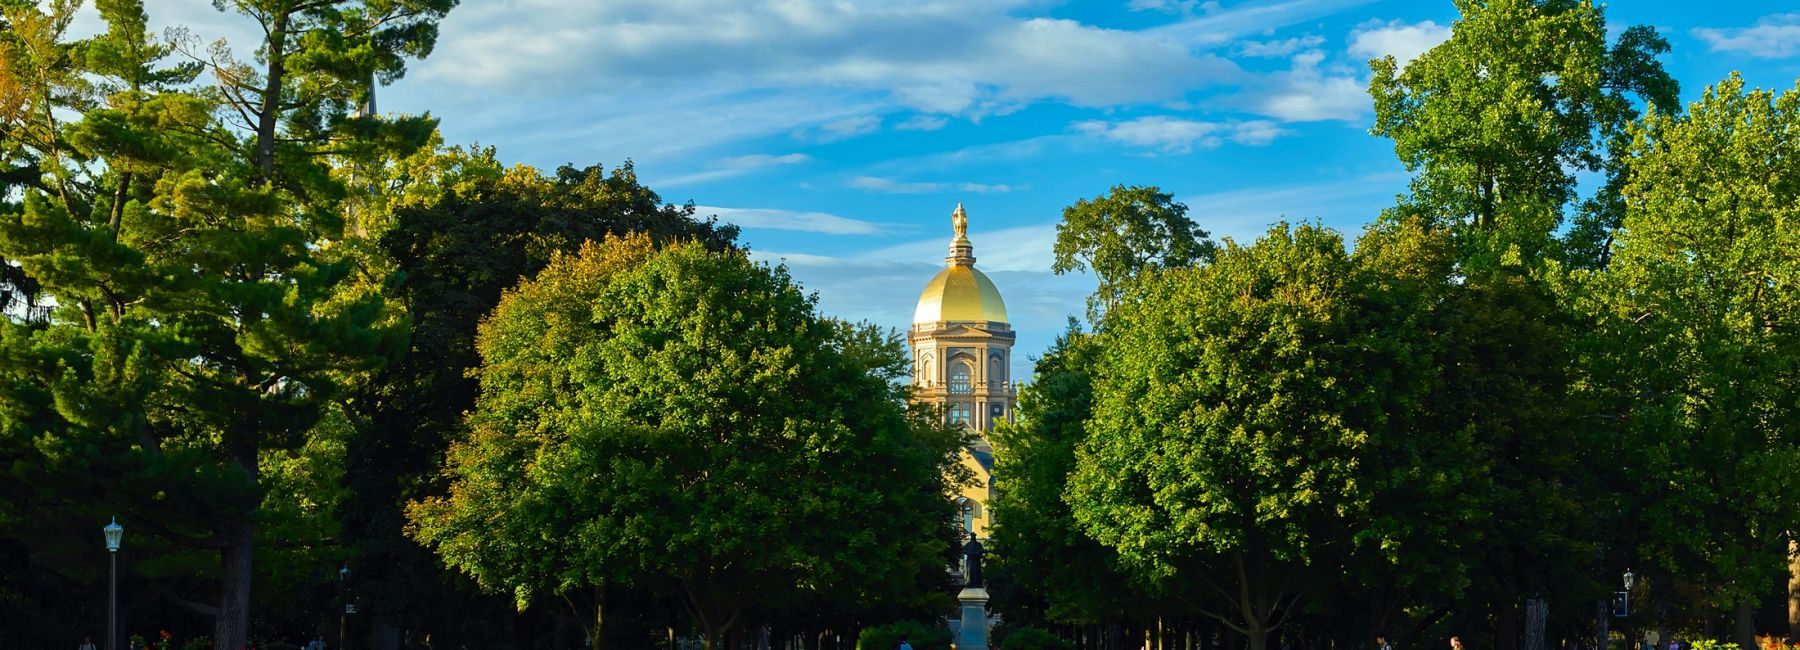 The grounds and Golden Dome of the University of Notre Dame.